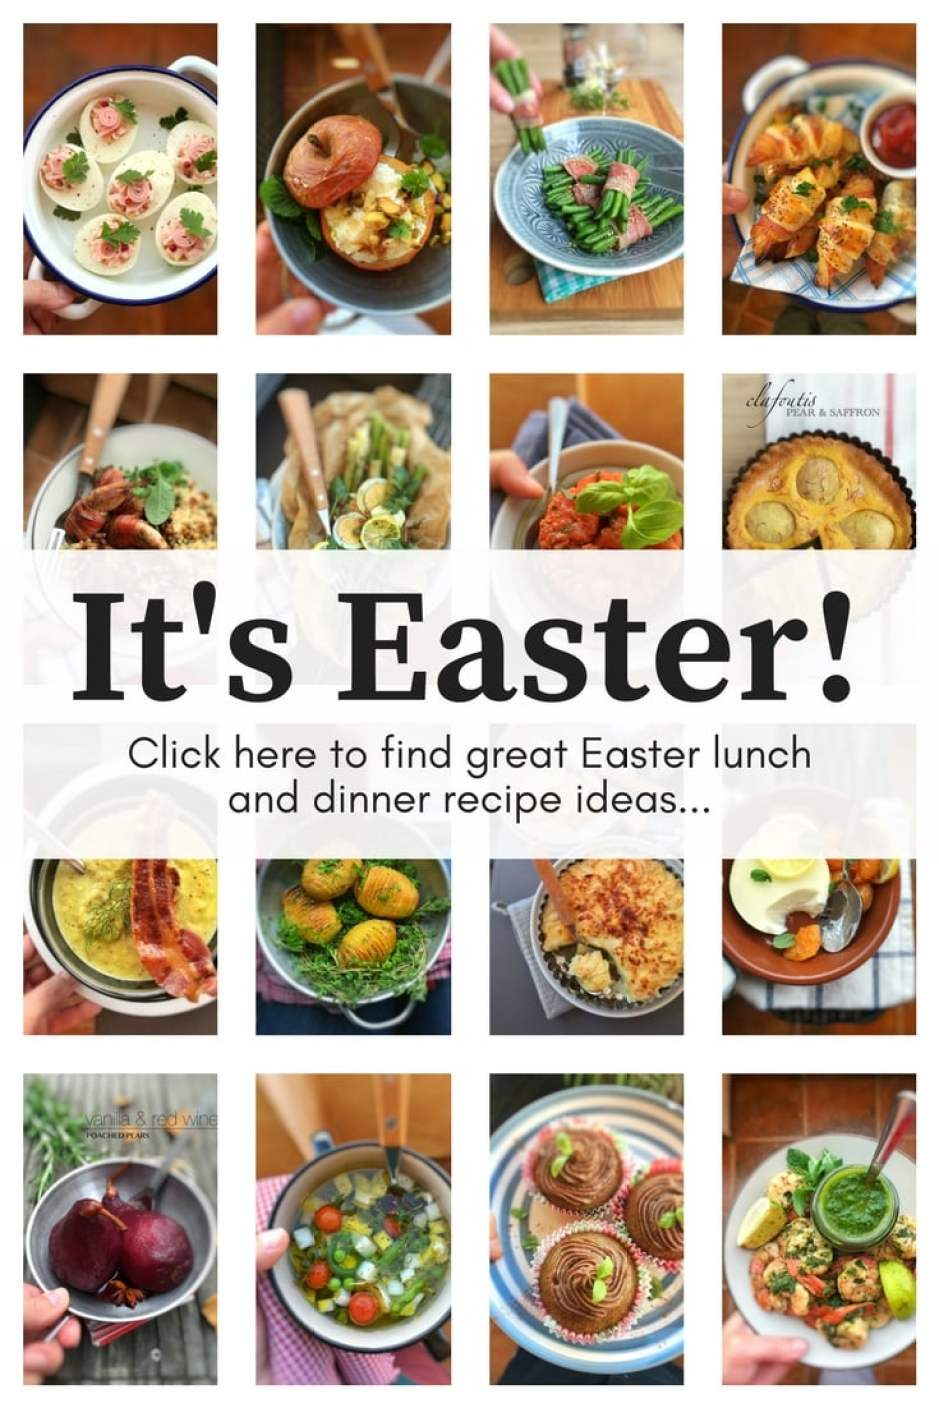 Time again to start thinking about Easter dinner recipes! How about a number of recipe ideas to get you started?